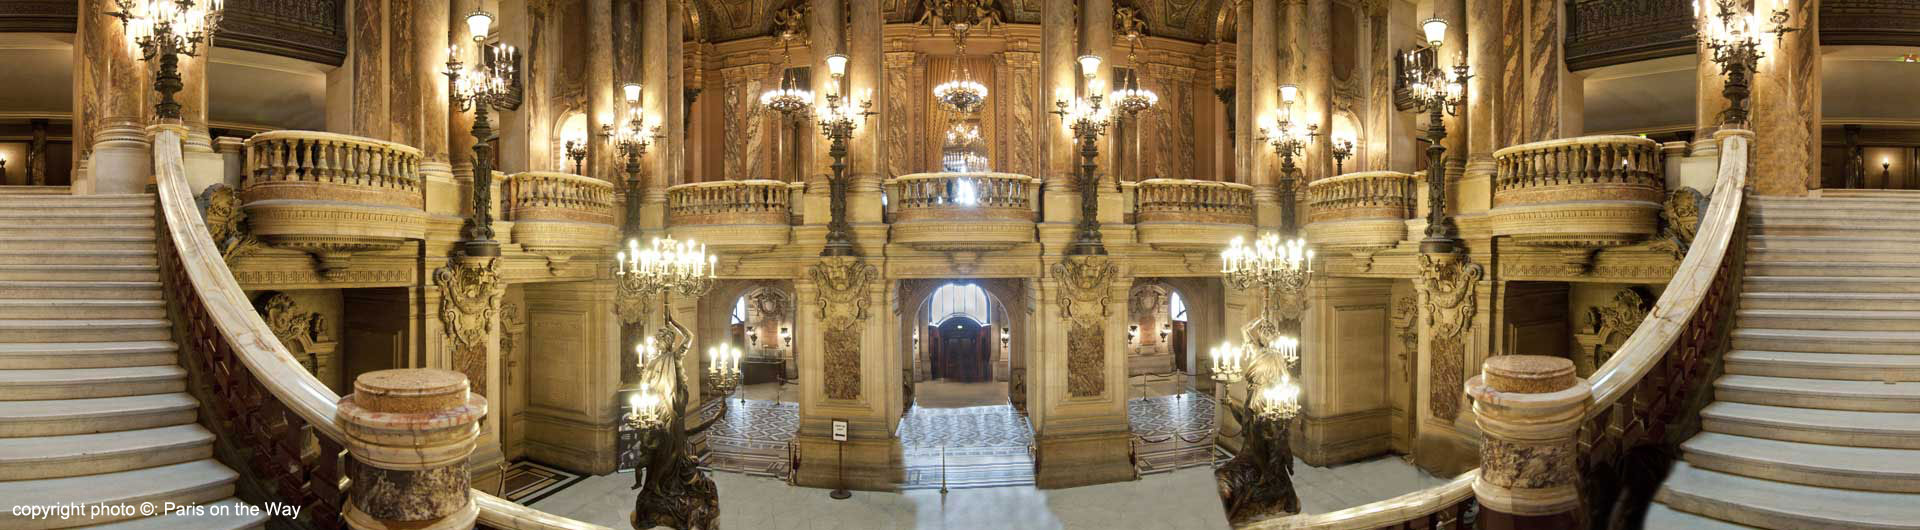 THE OPULENT GRAND STAIRCASE